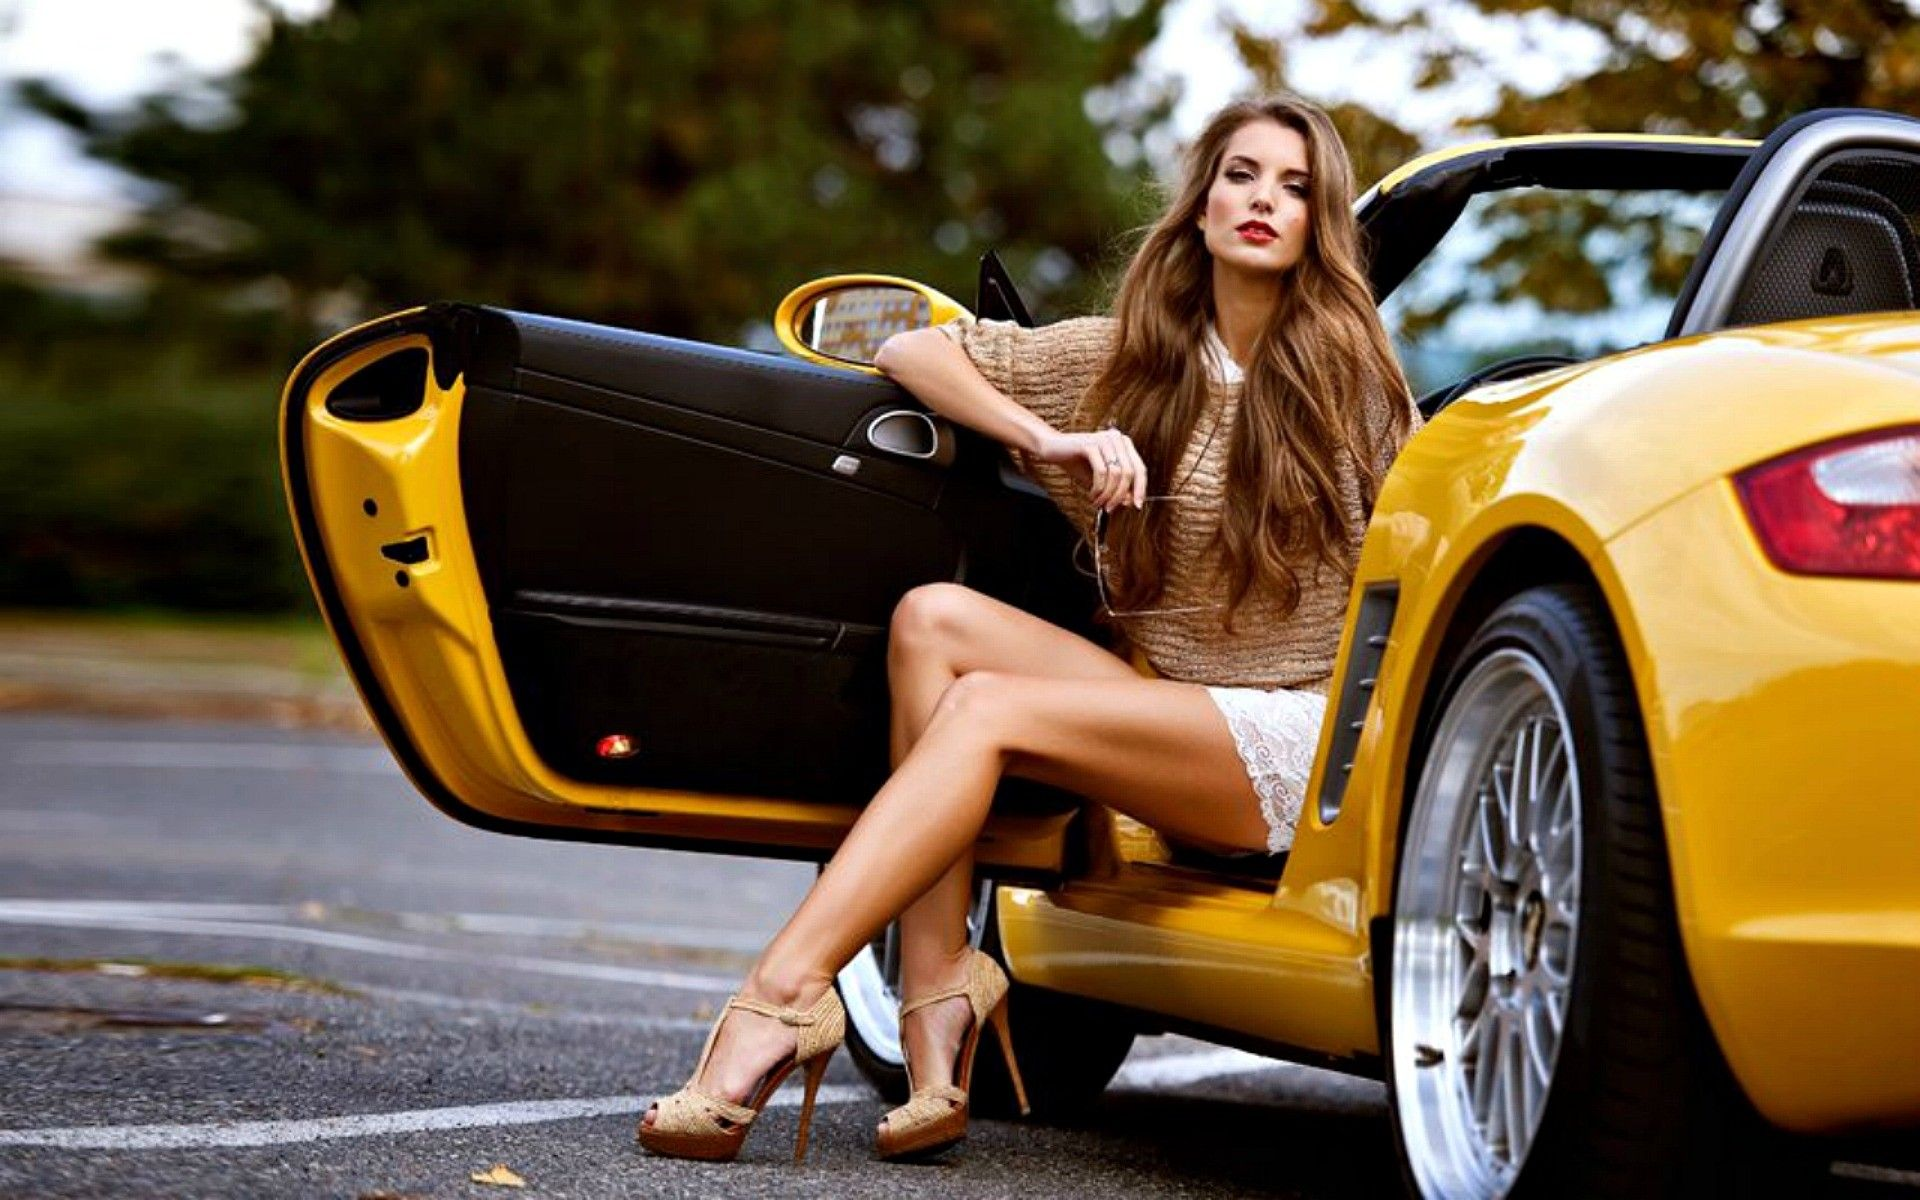 Long Sexy Legs and Cars   Wallpaper Car with Long Legged ...